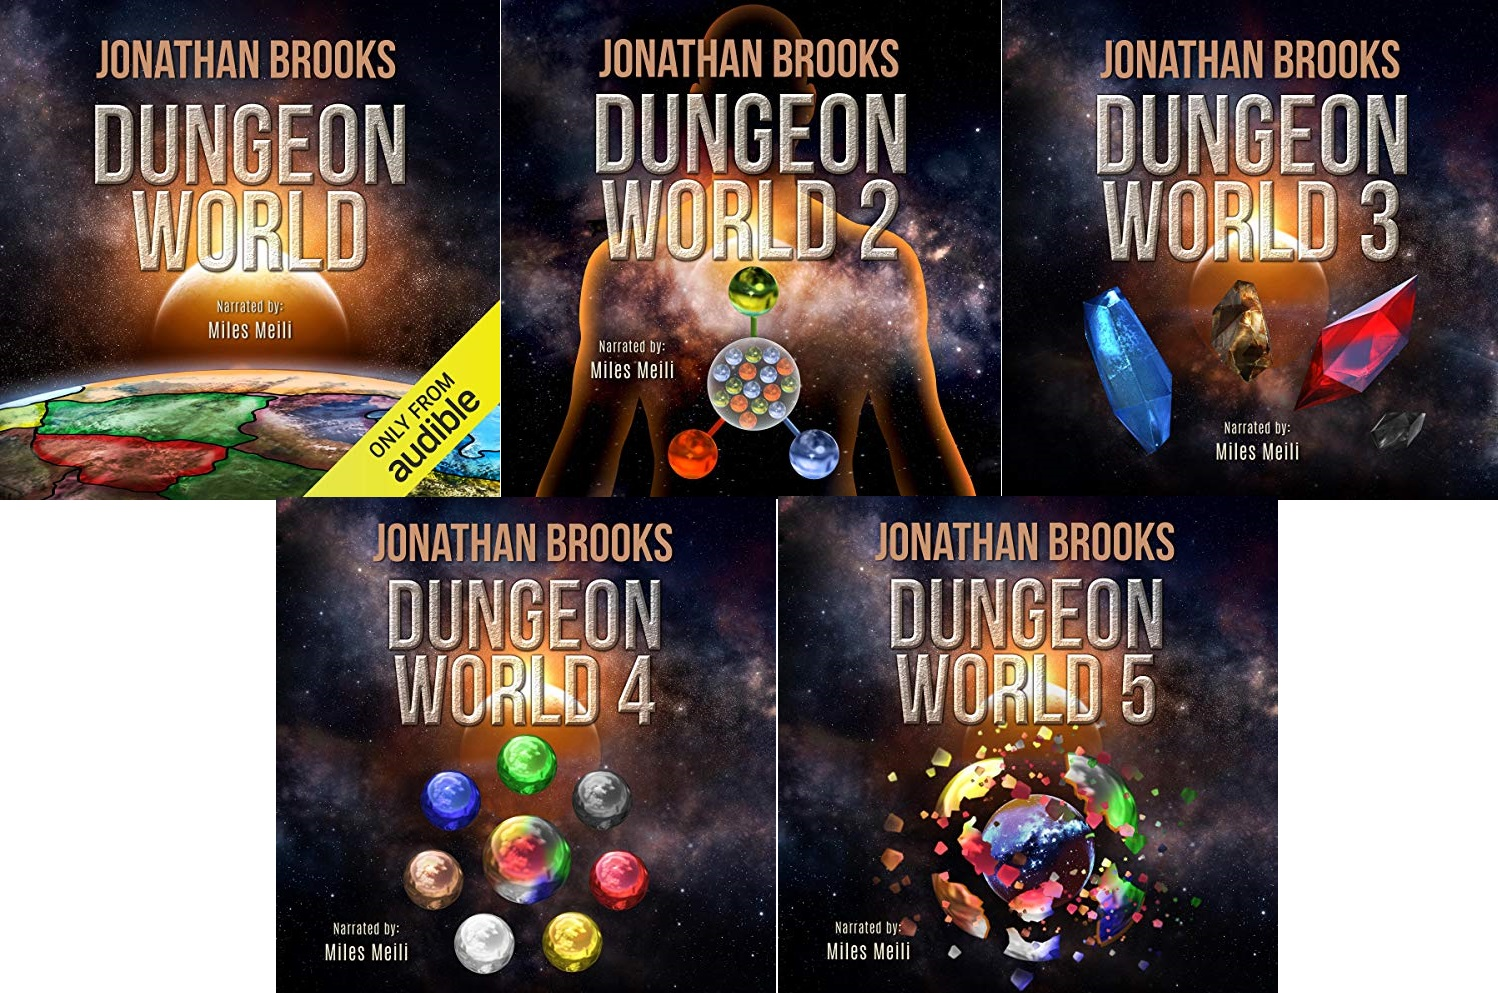 Dungeon World Series Books 1-5 - Jonathan Brooks